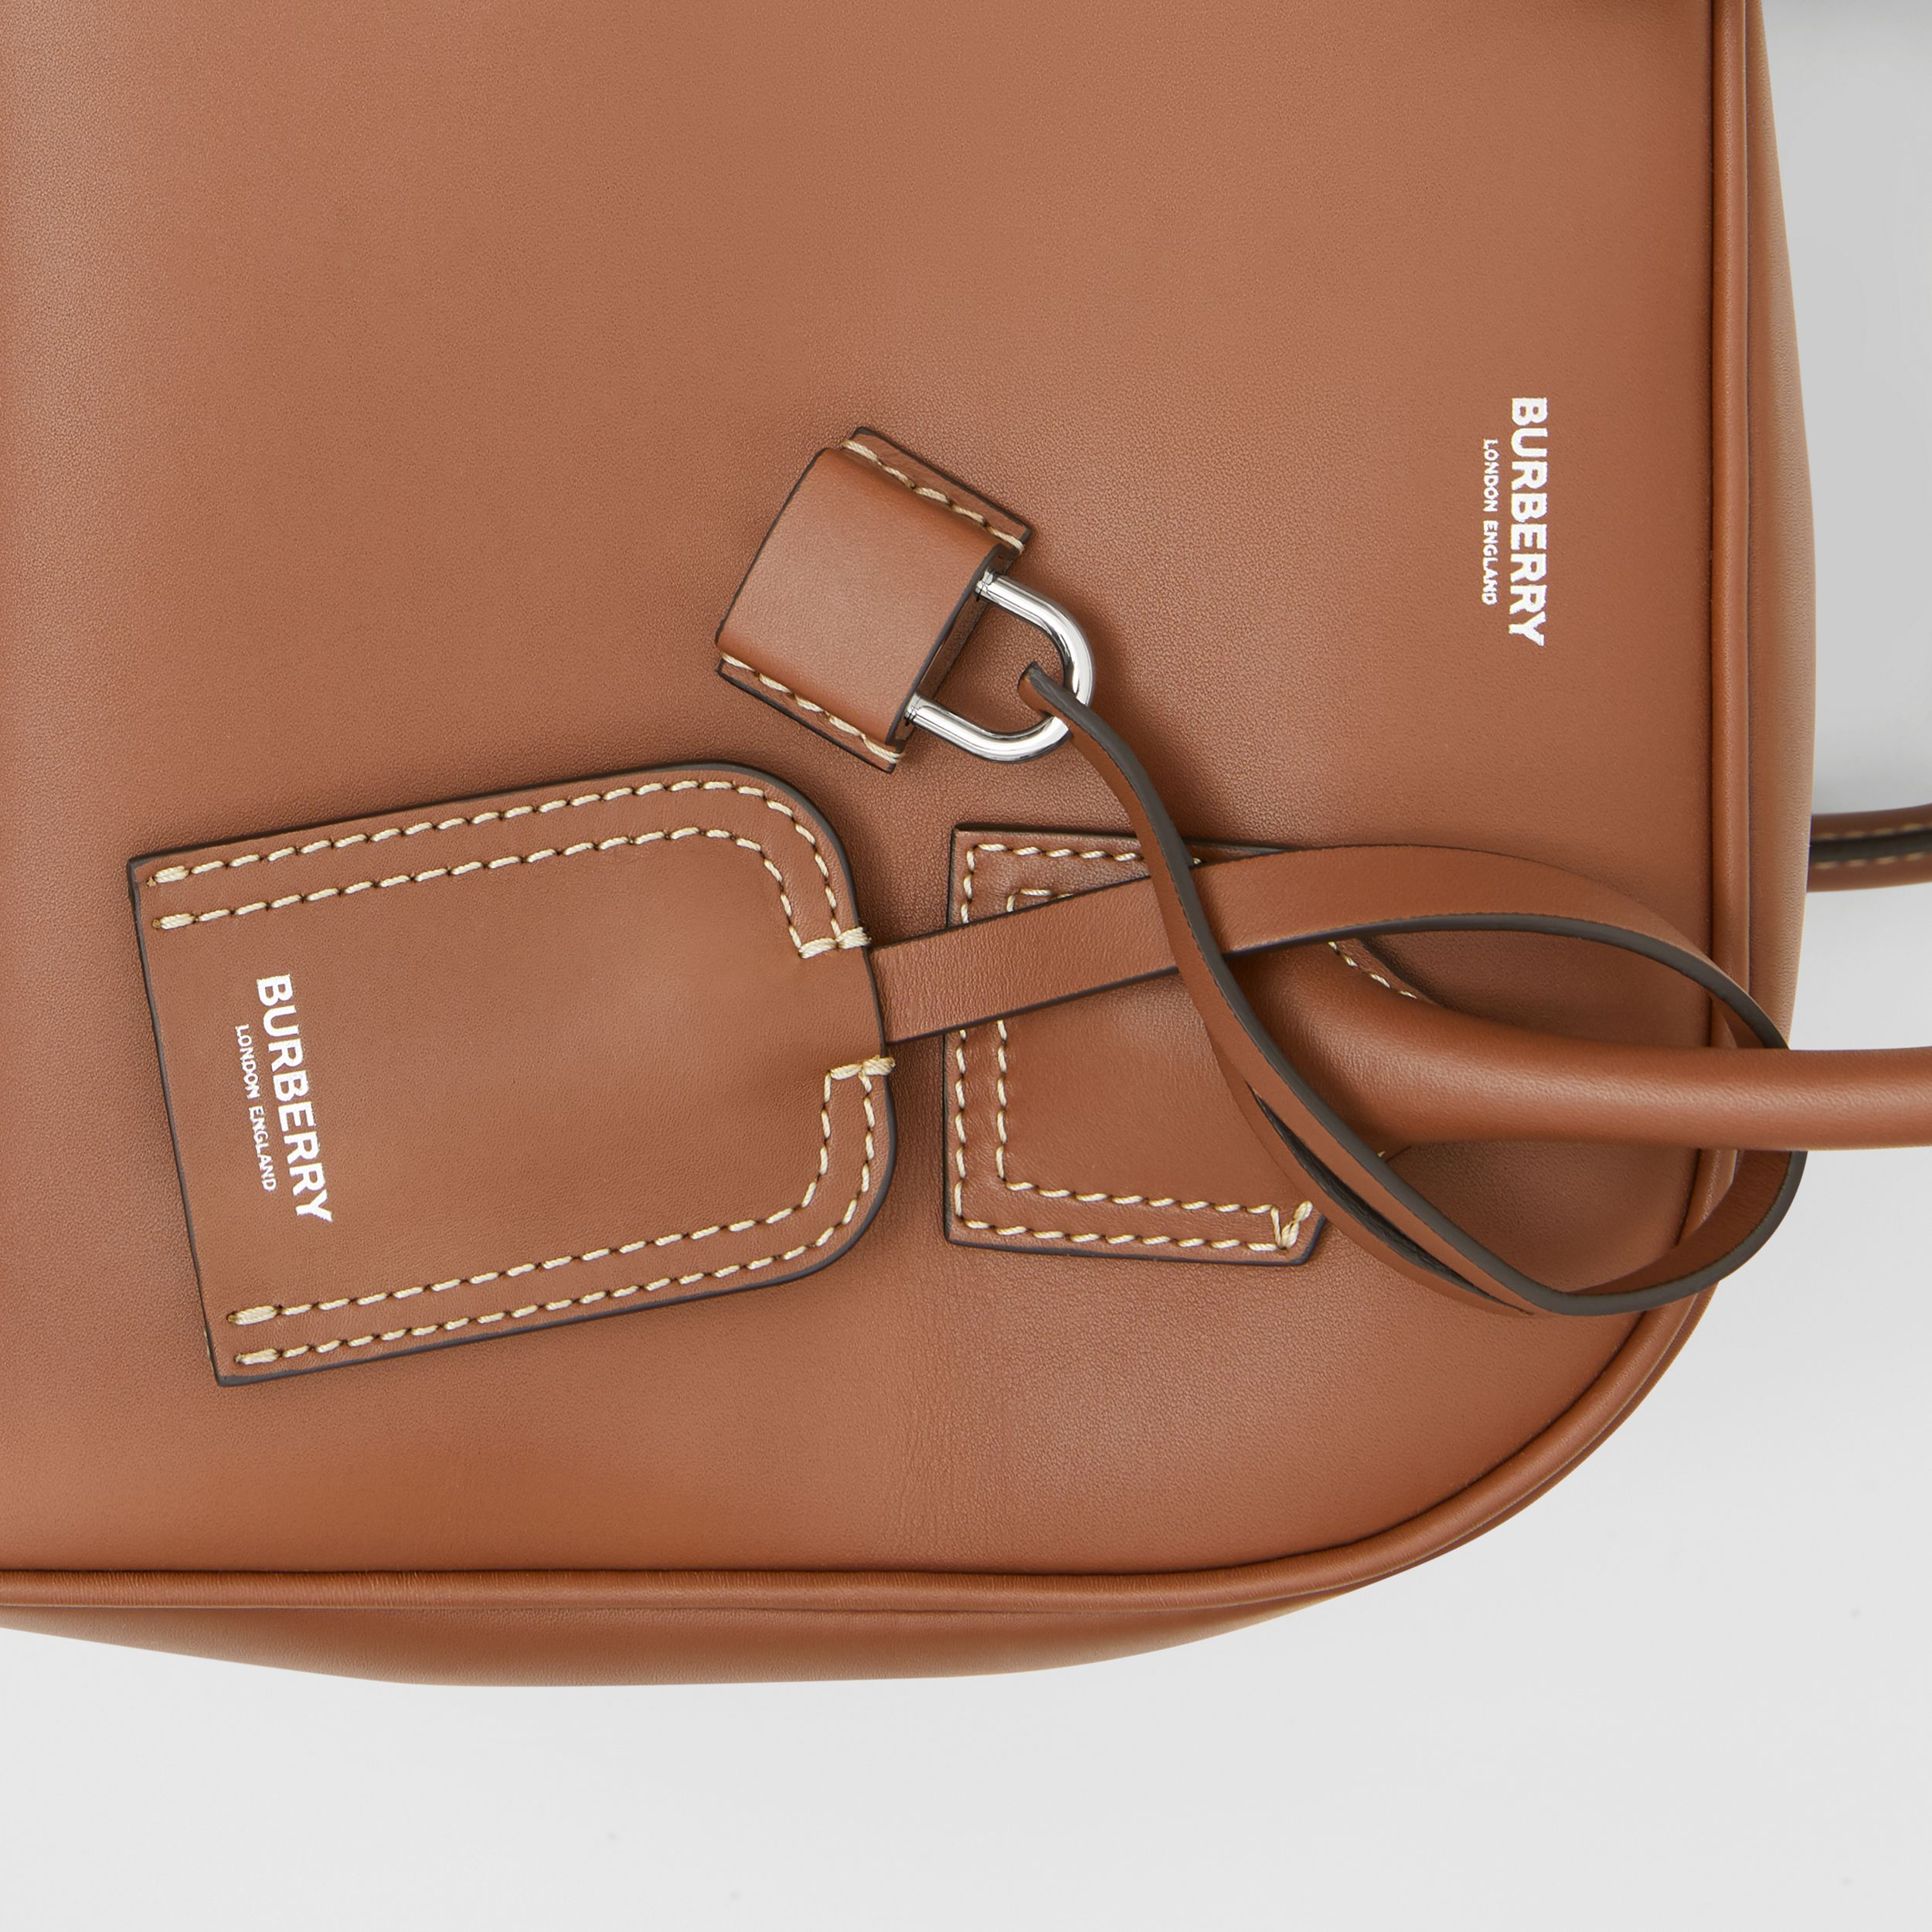 Small Leather Cube Bag in Malt Brown - Women | Burberry Canada - 2